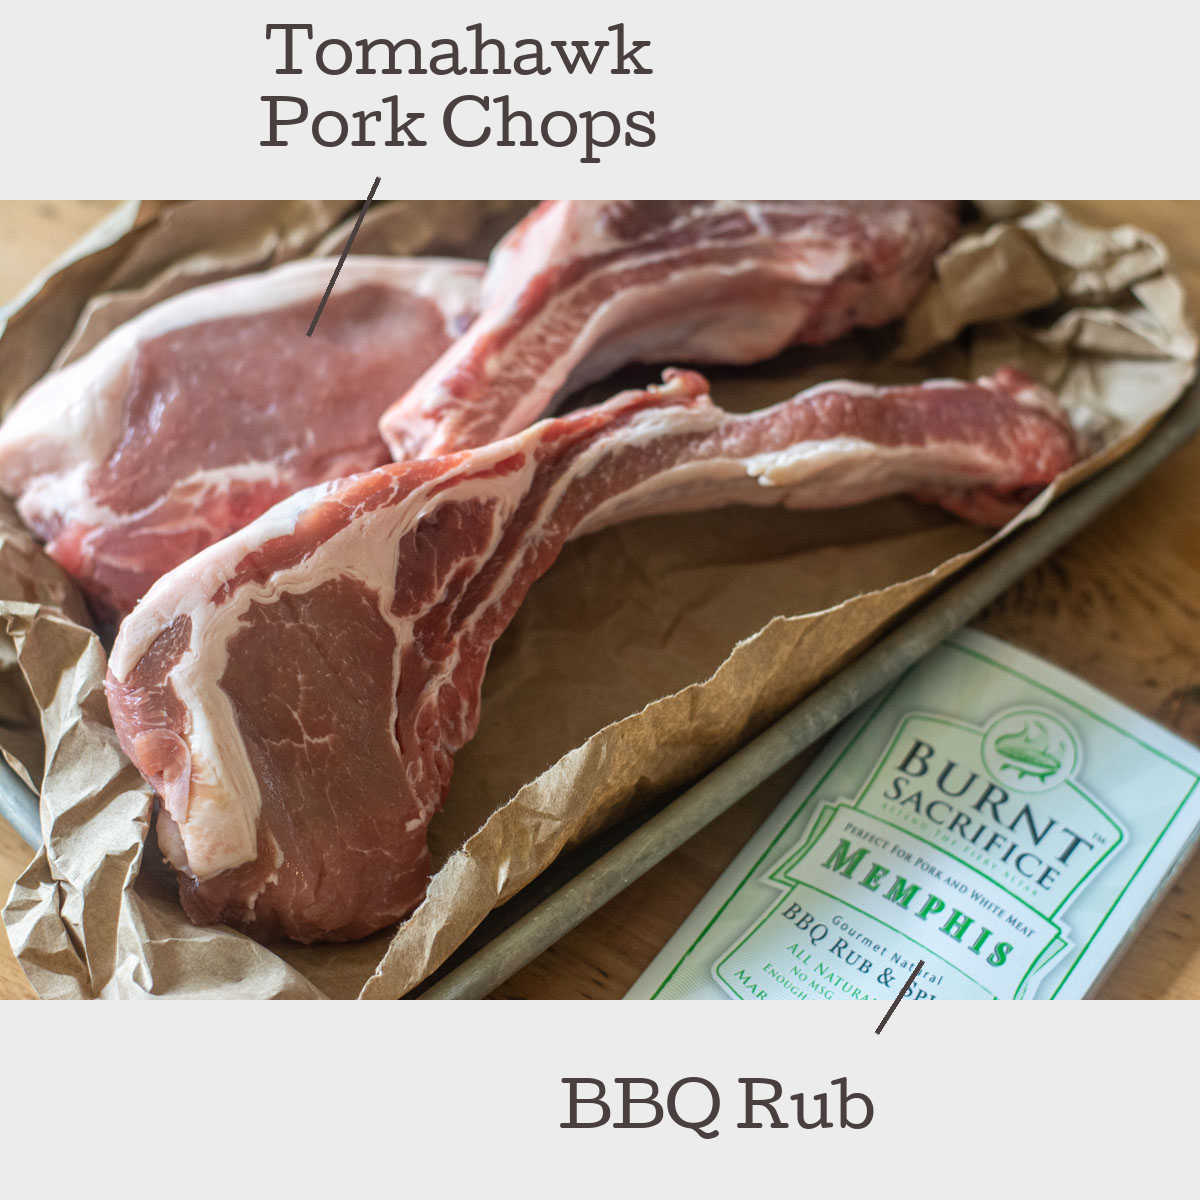 two ingredients laid out on sheet pan for the tomahawk pork chops